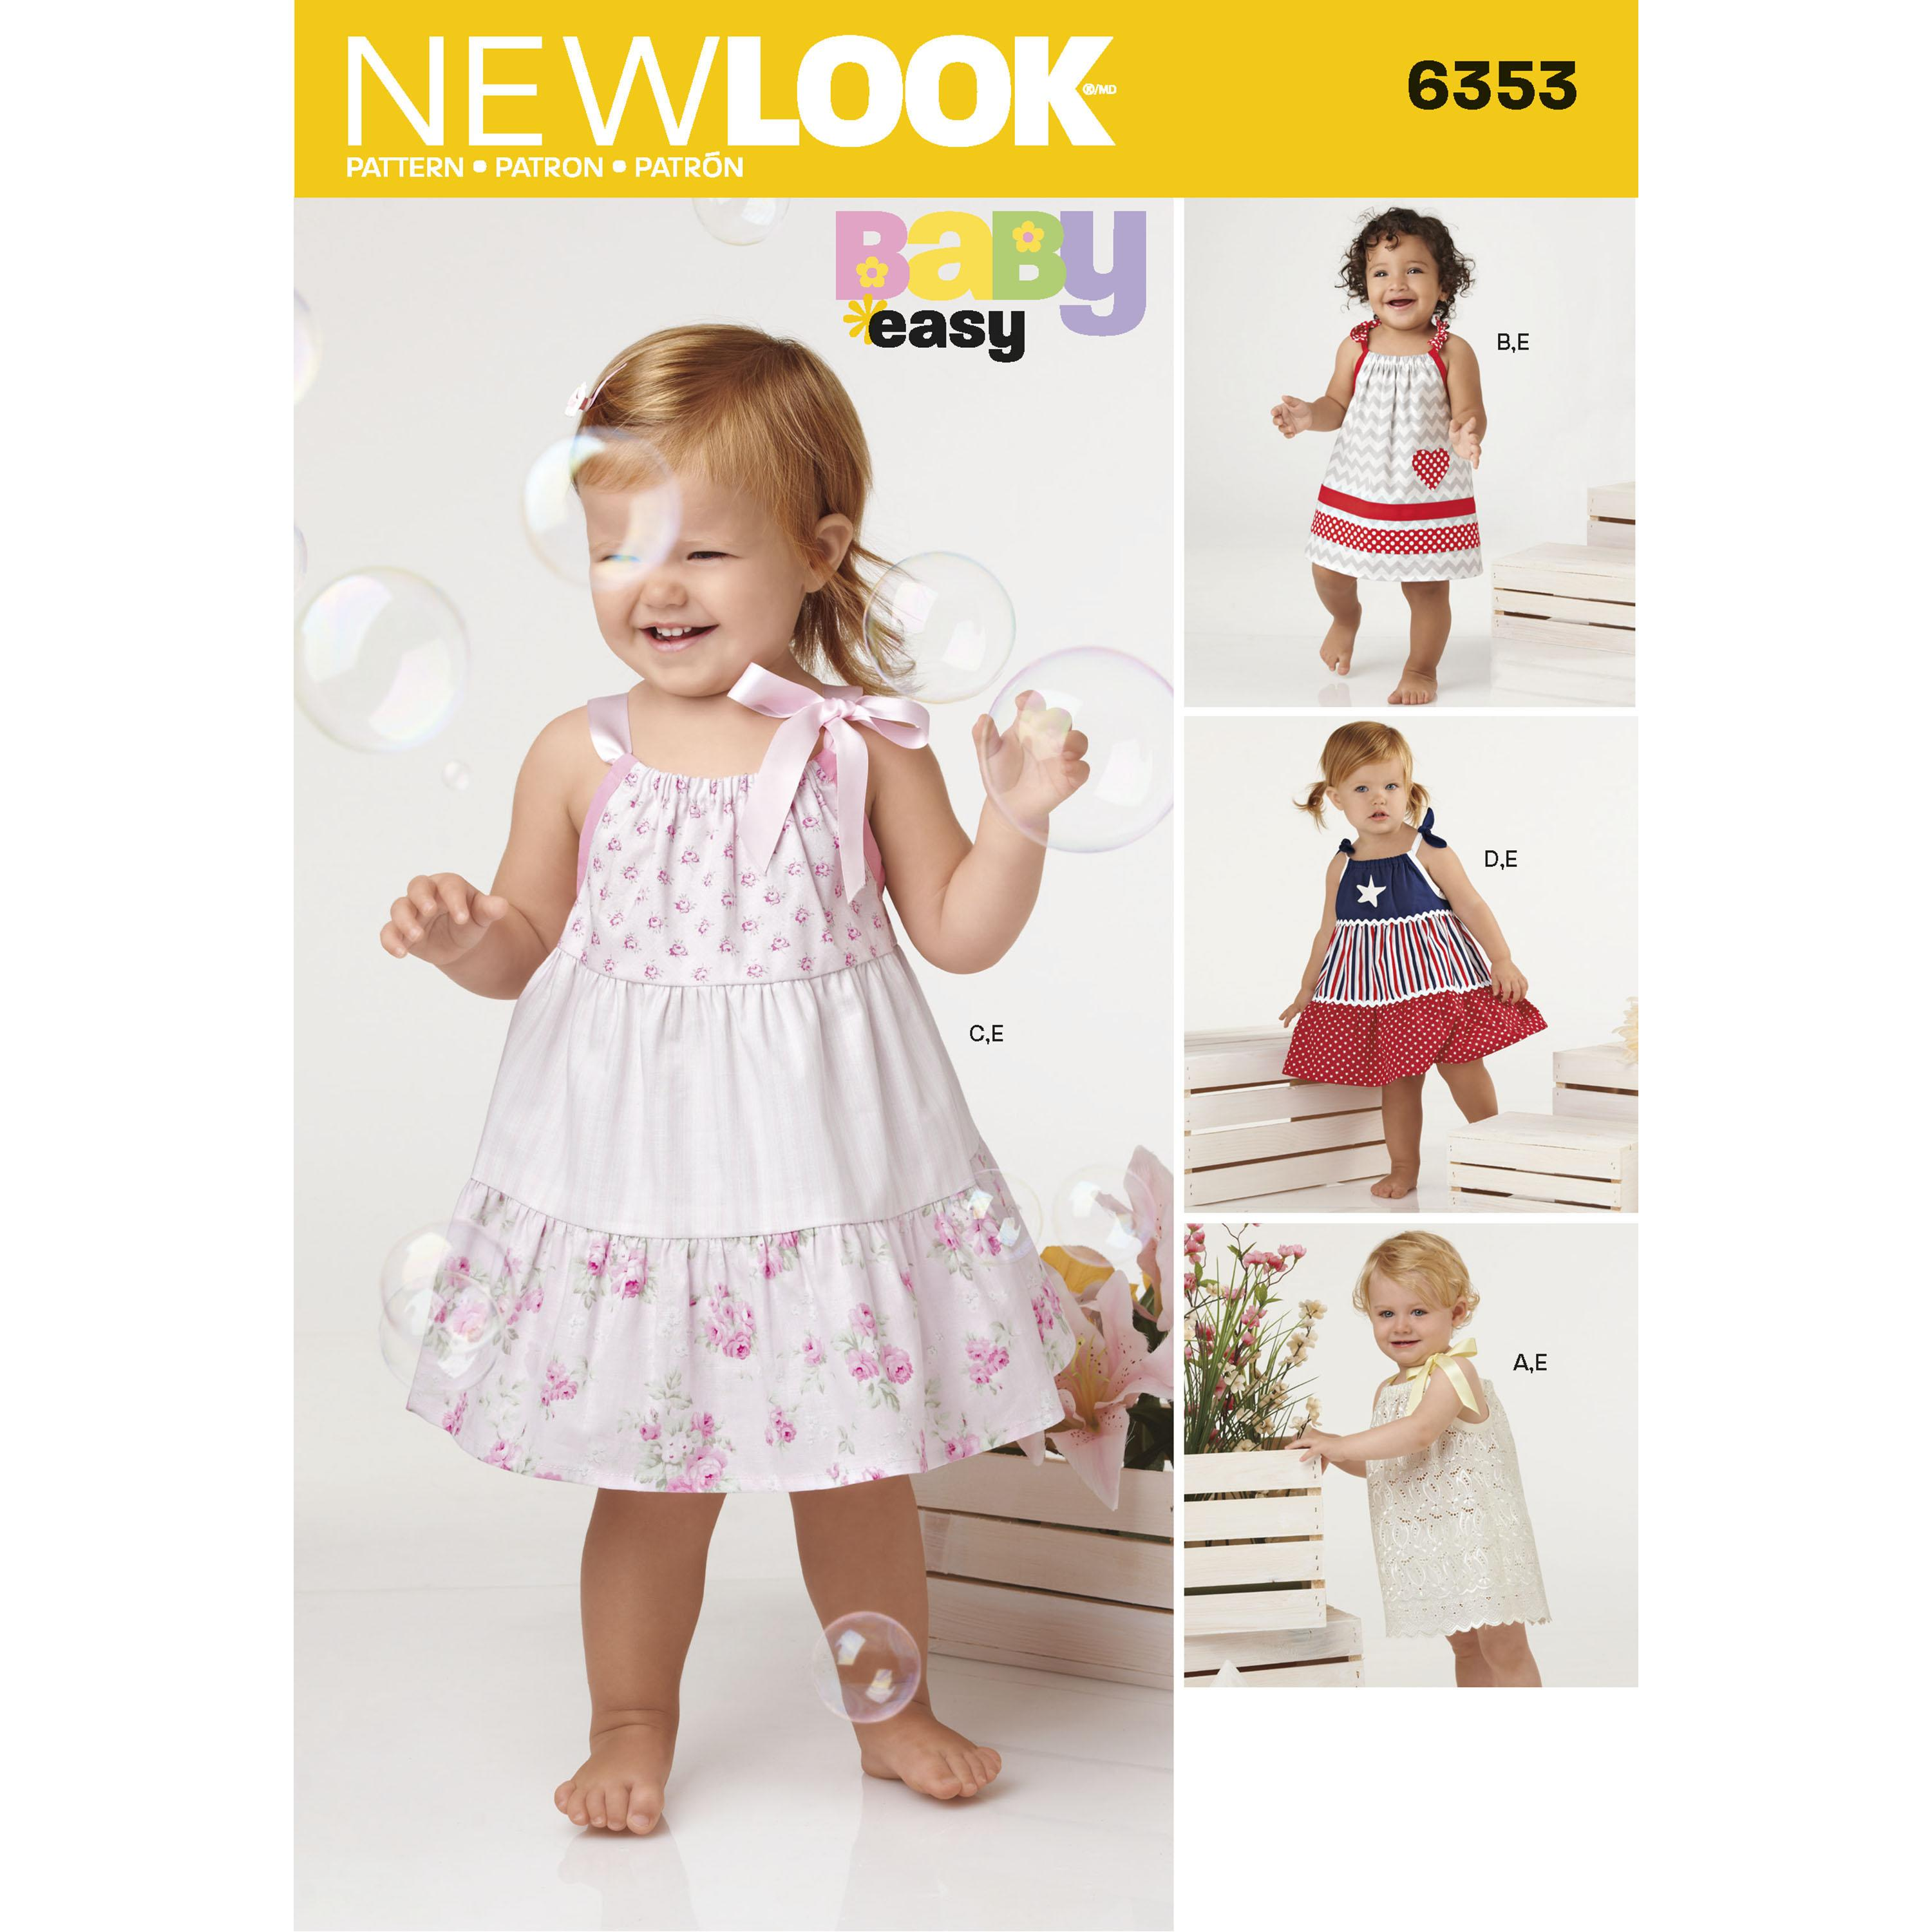 NewLook N6353 Babies' Dresses and Panties